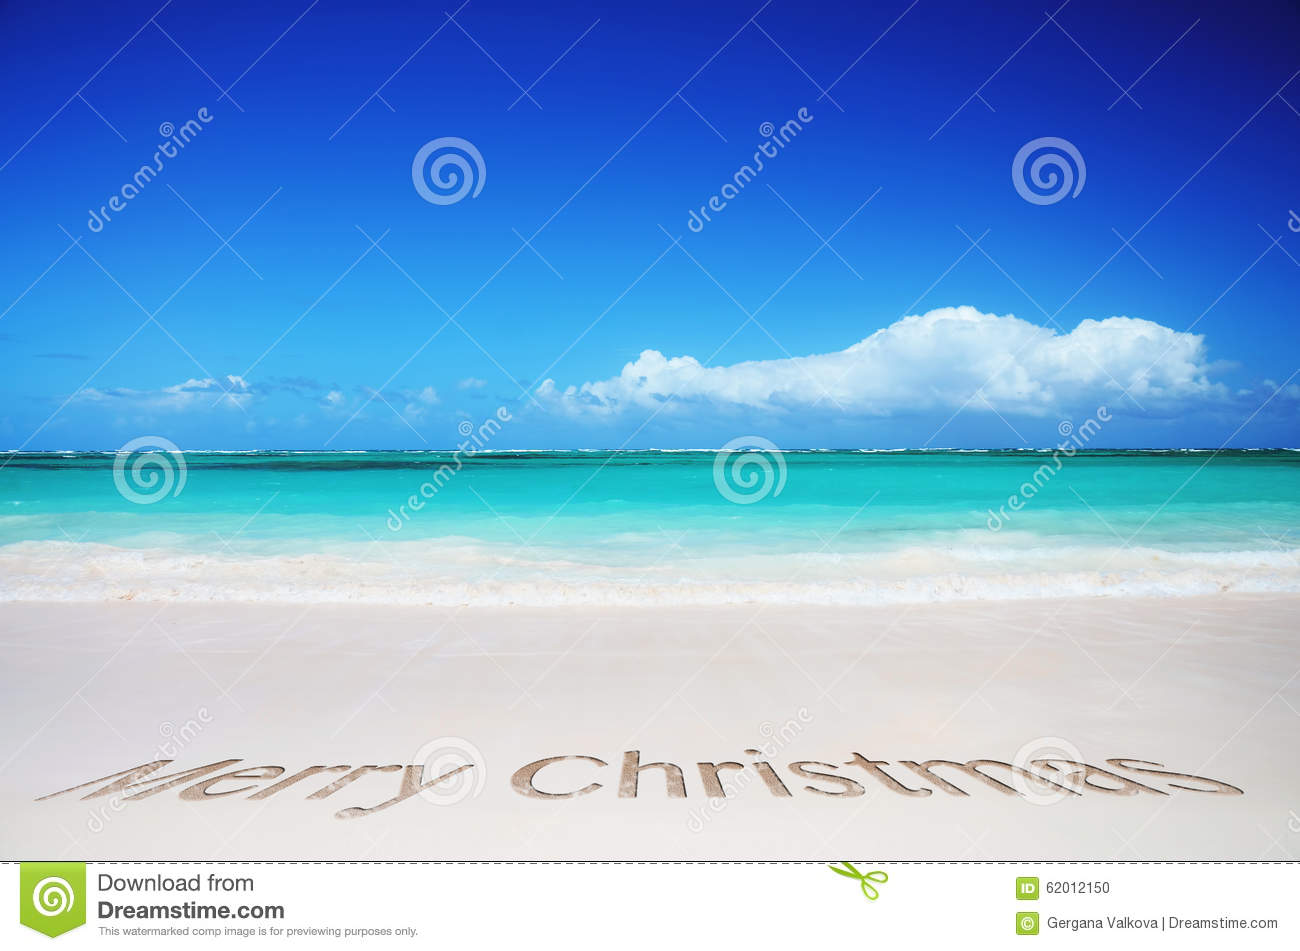 tropical beach and merry christmas text stock photo - Merry Christmas Beach Images